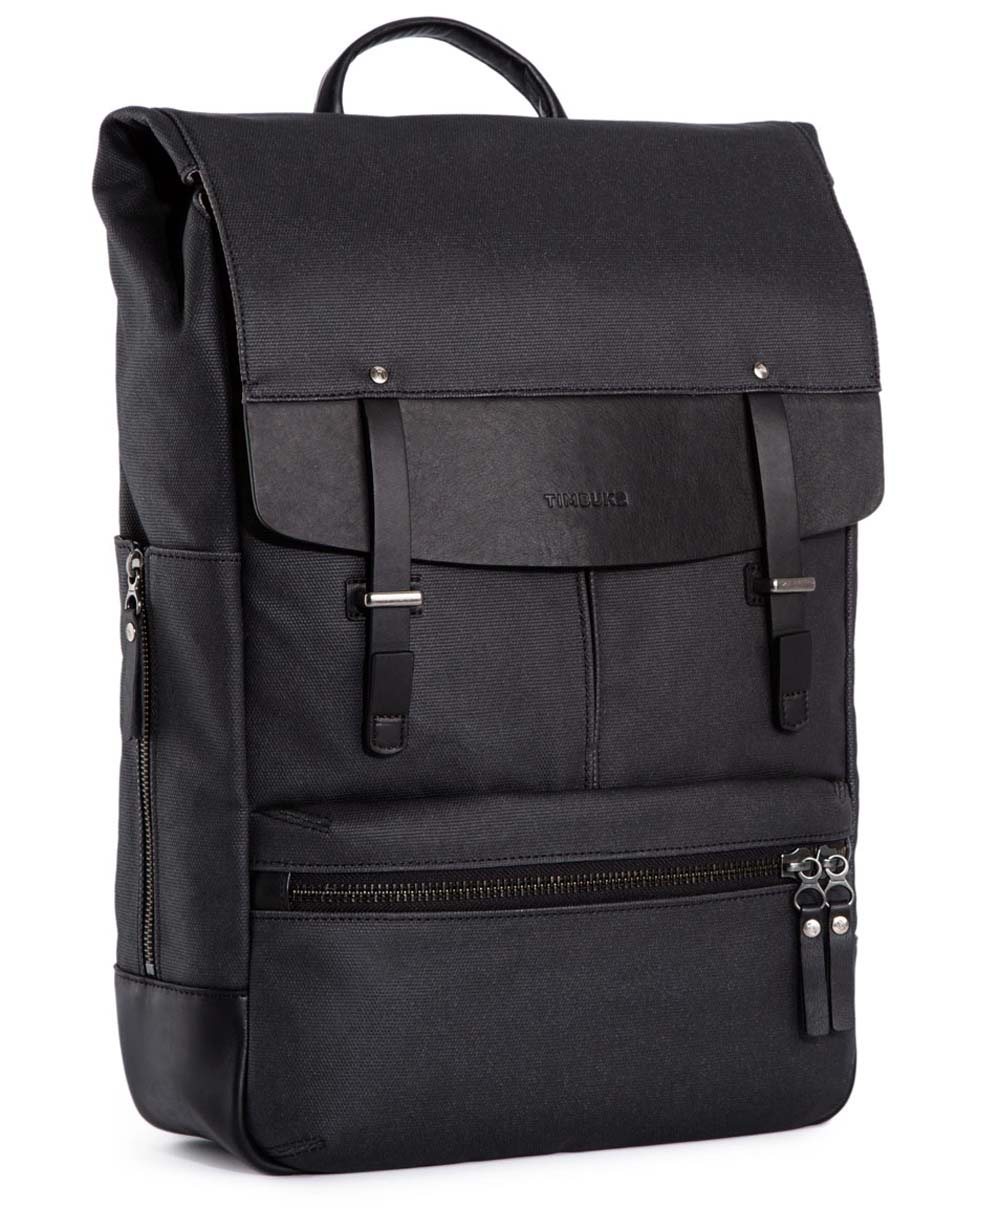 Timbuk2 Walker Pack Laptop Black One Size Backpack by Timbuk2